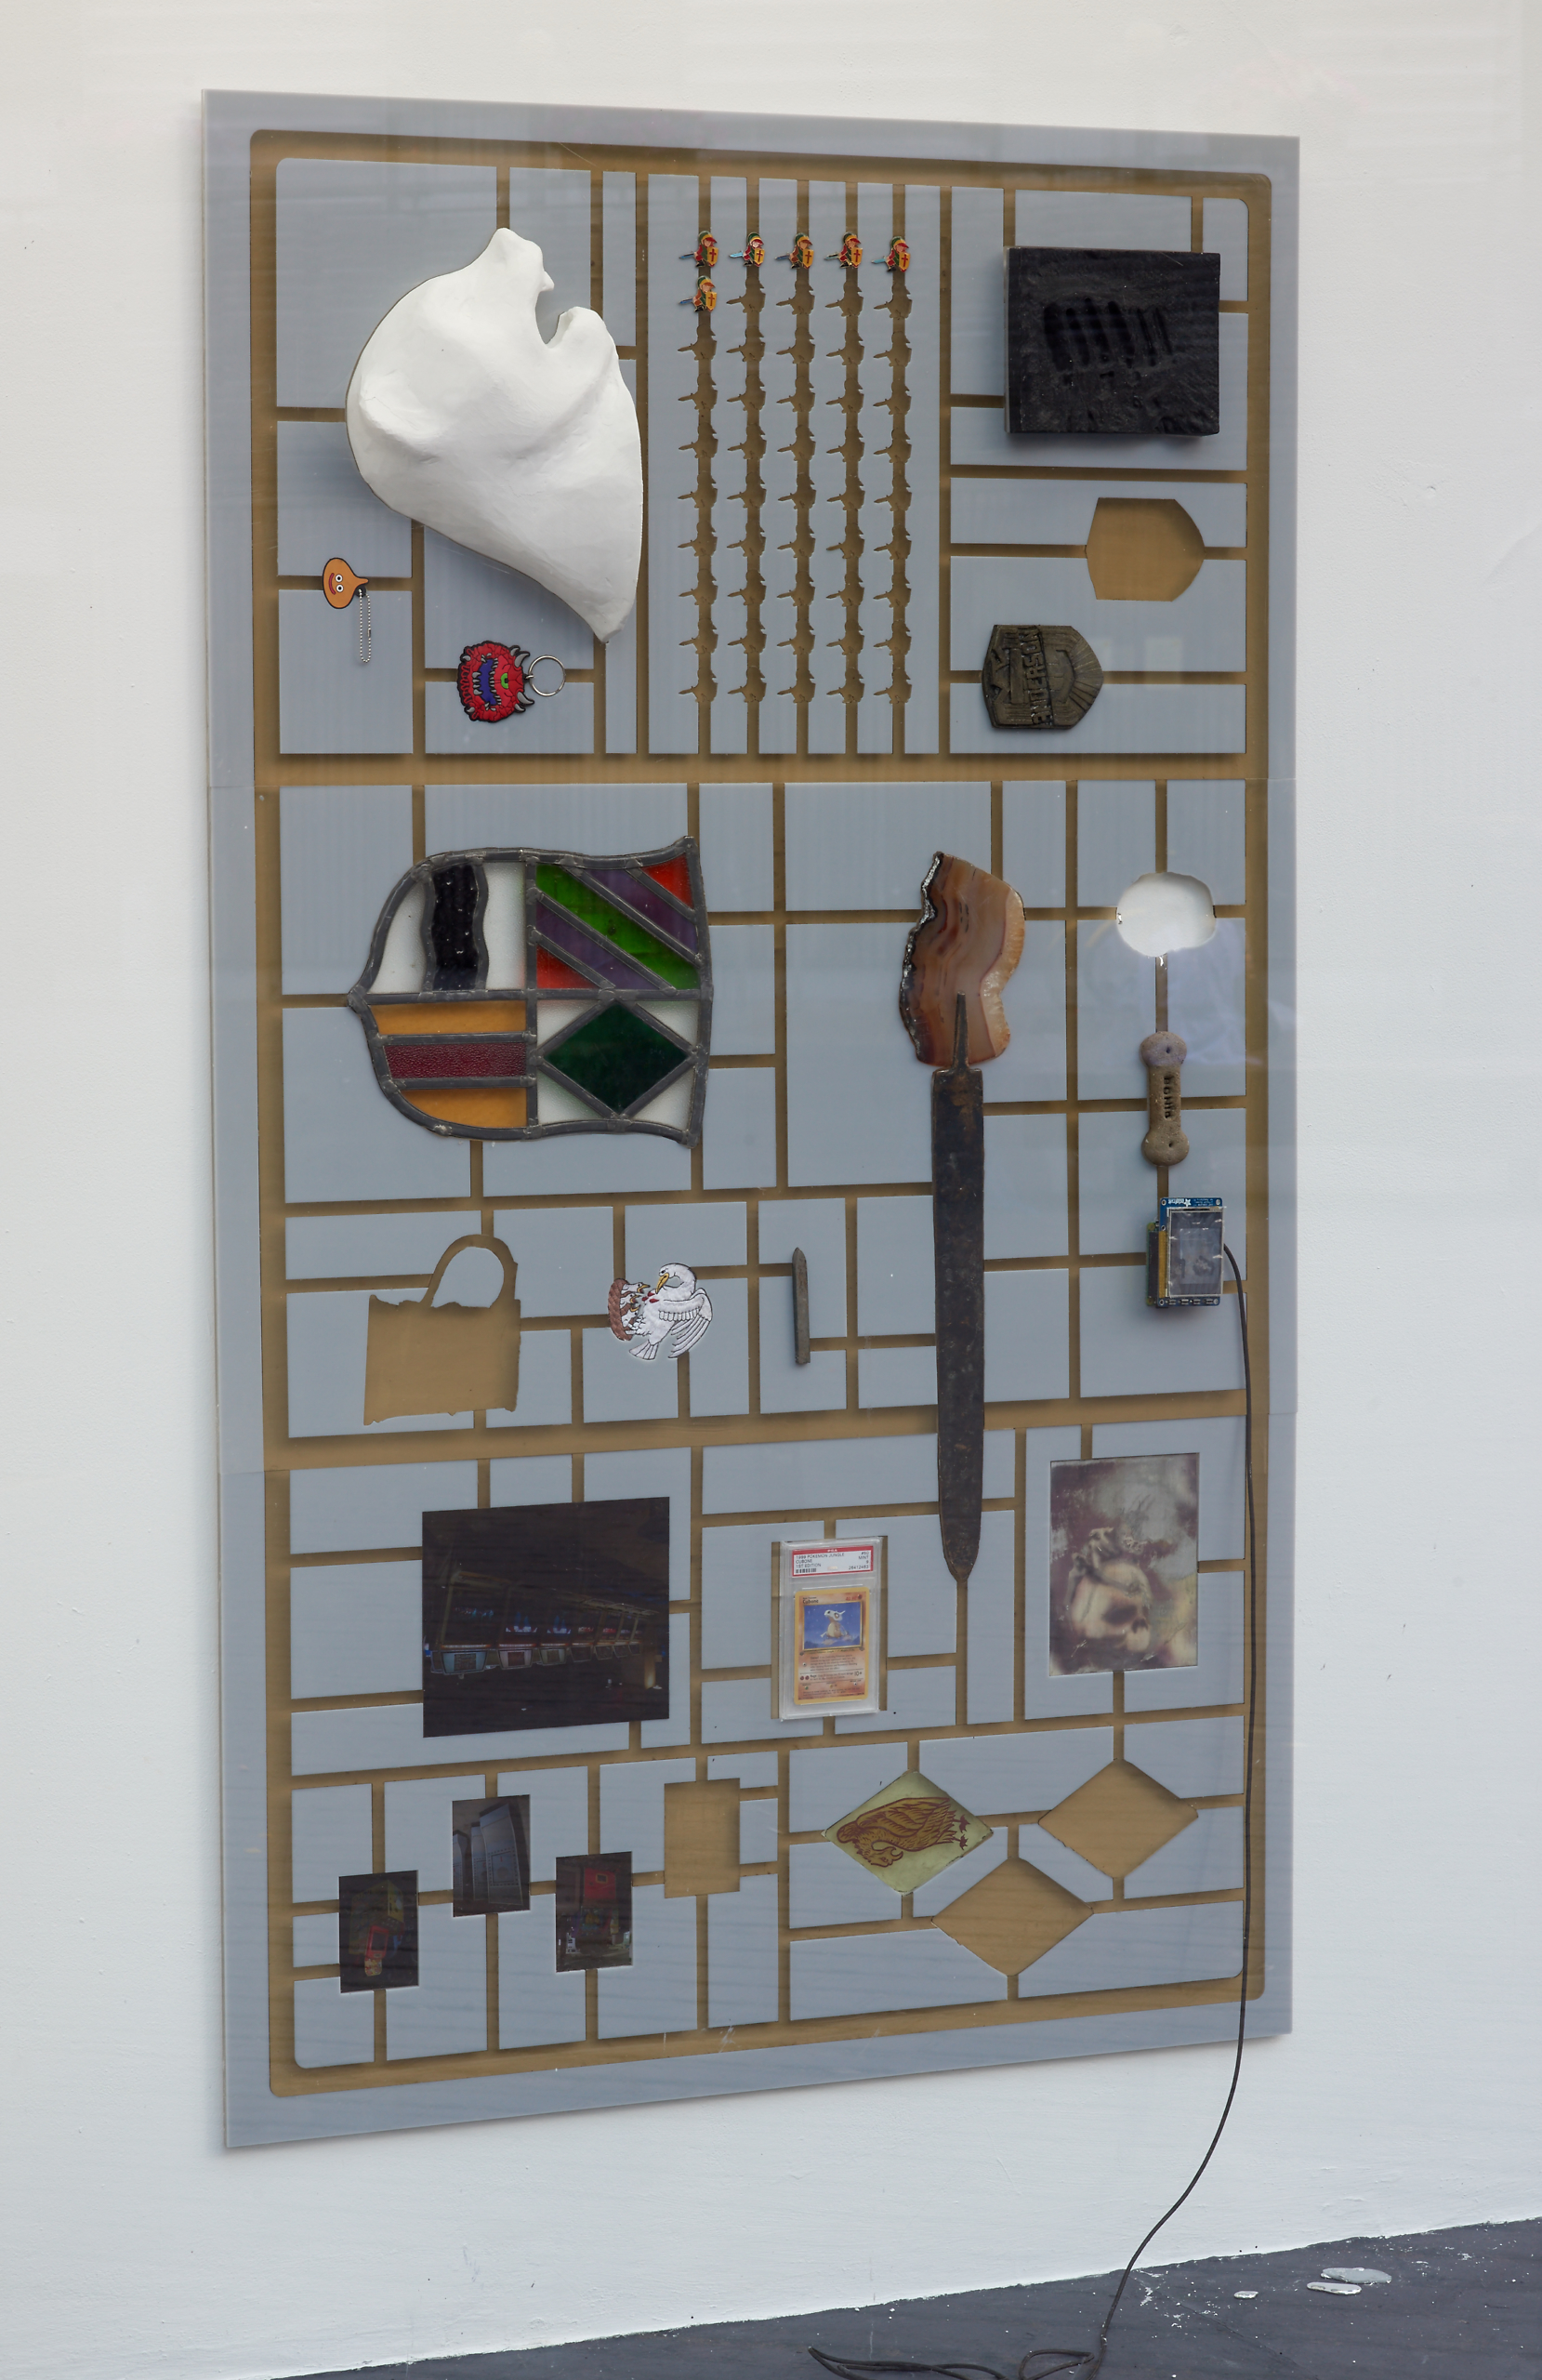 Liv Preston, saturnism, 2018. Sprue system, mixed media*, found objects*, bronze, metal punch, stained glass, lead, acrylic. VITRINE London. Photographer : Jonathan Bassett.